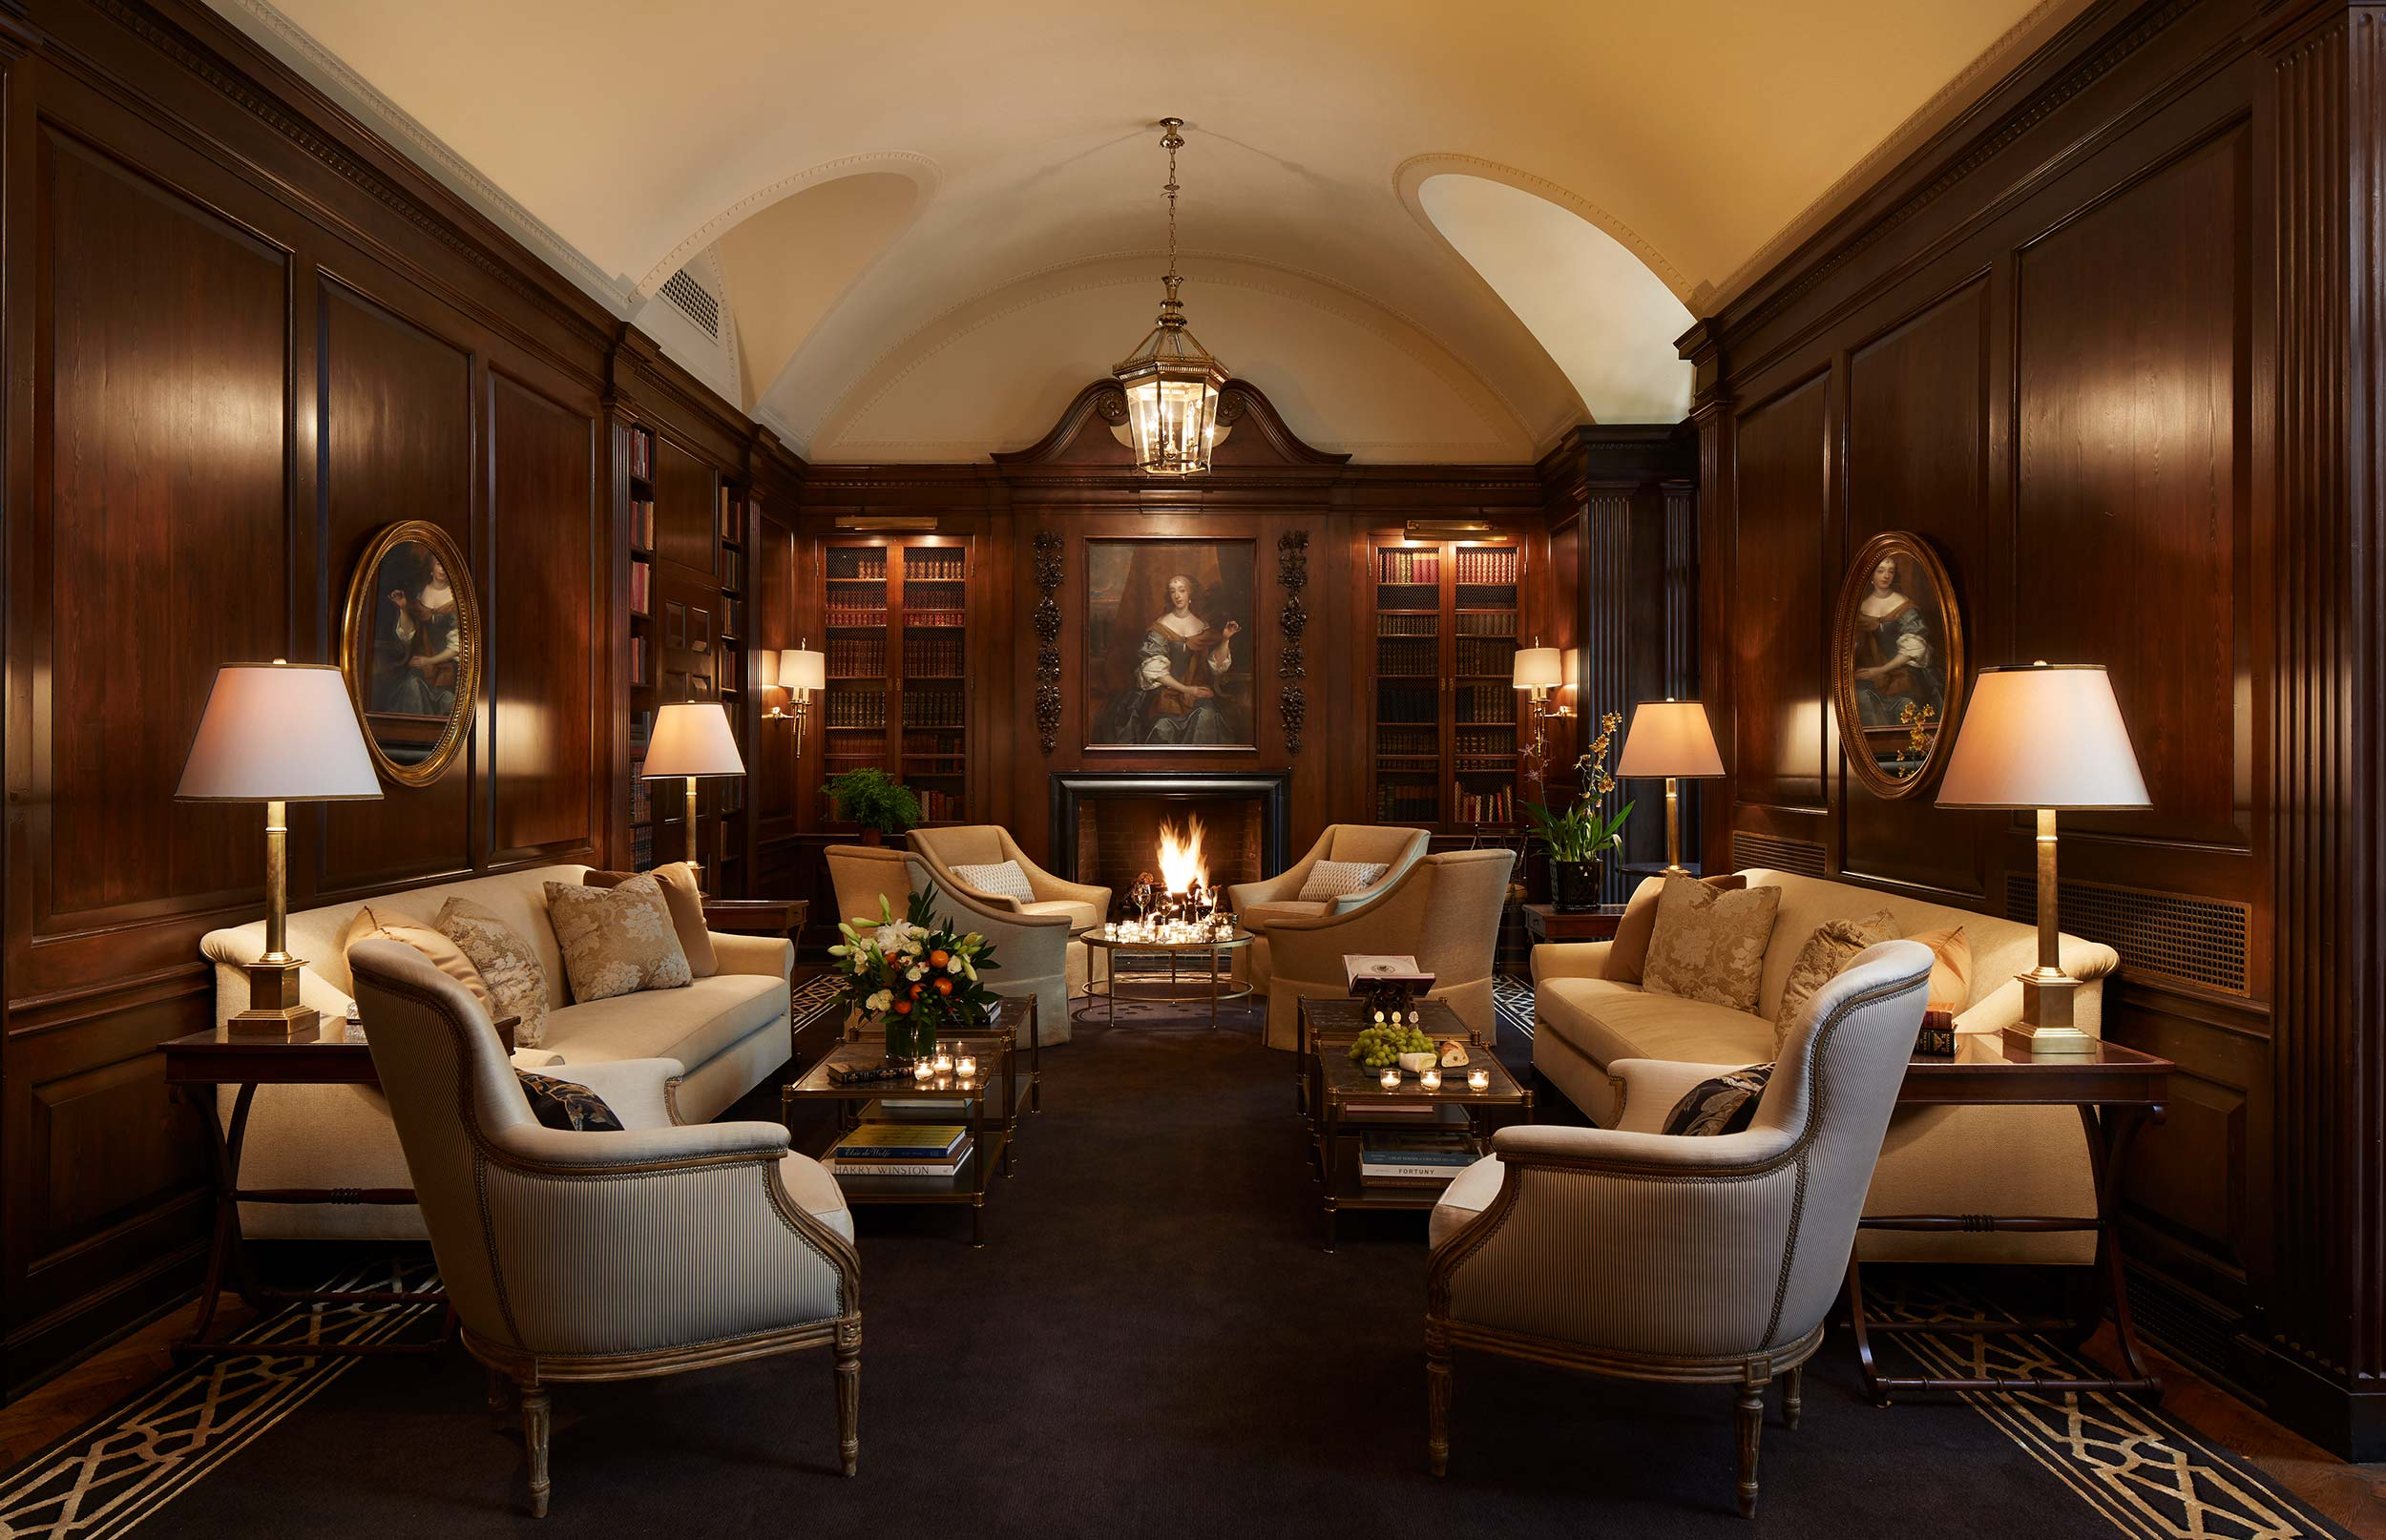 custom sofas, custom skirted lounge chairs, reupholstered bergere arm chairs & decorative throw pillows  Interior Design: Craig & Company for Women's Athletic Club, Chicago